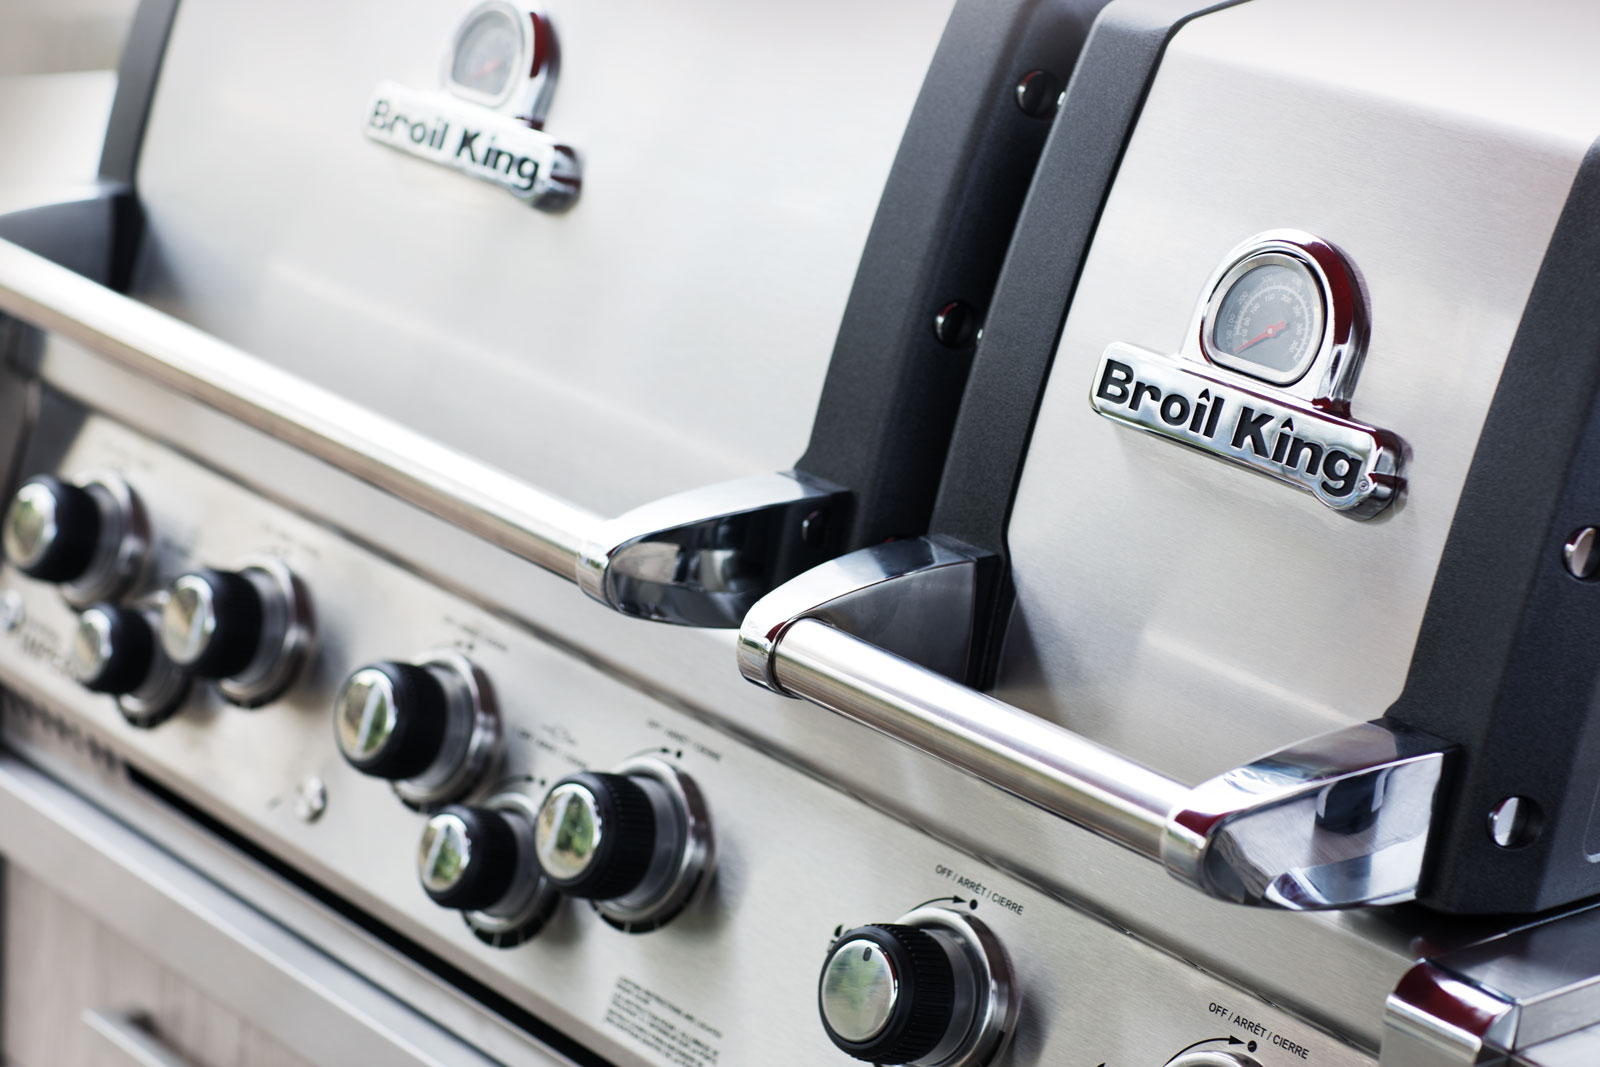 Outdoor Küche Kamado Joe : Unsere grills burnout kitchen